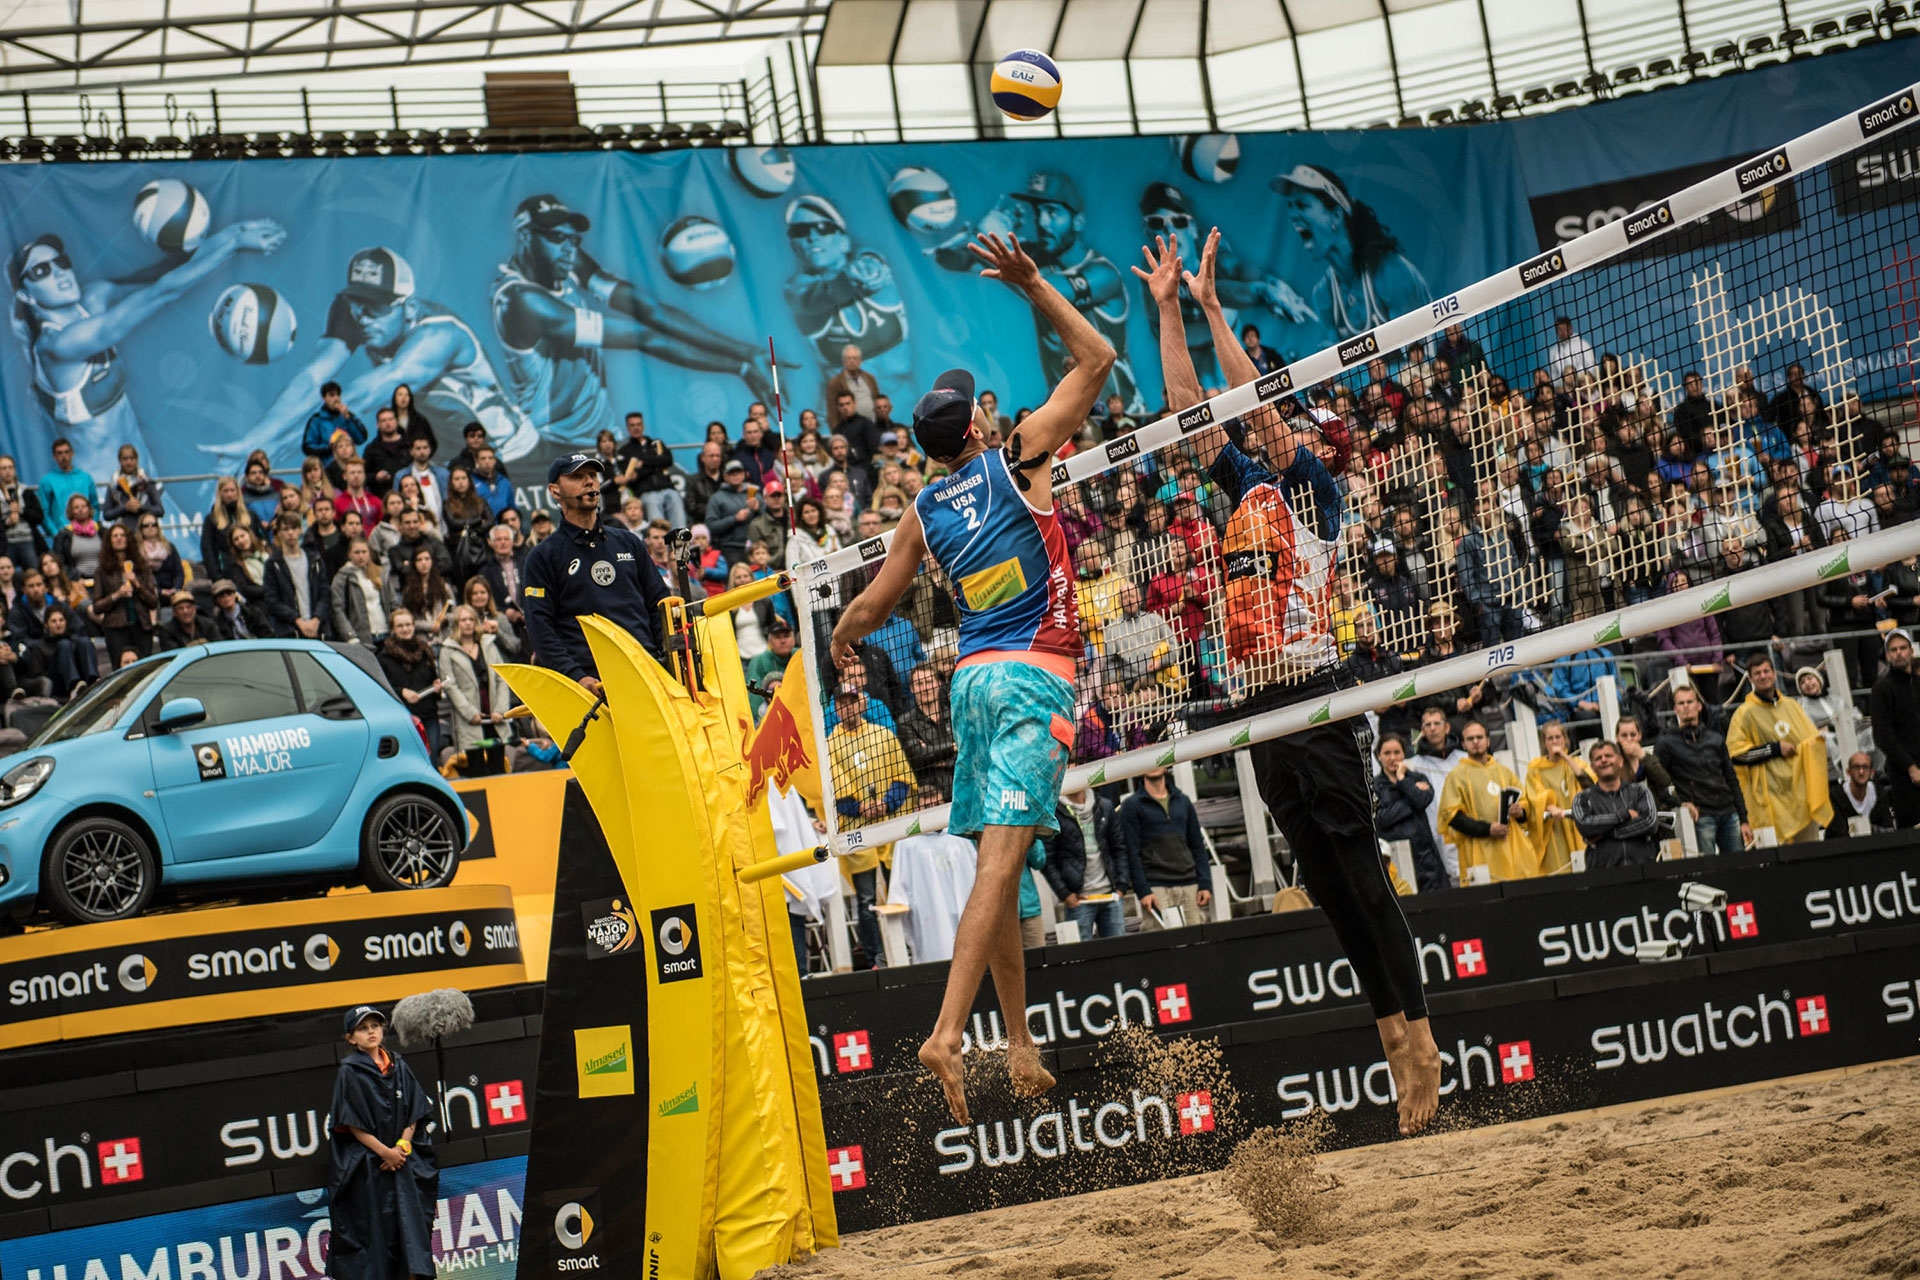 Phil Dalhausser bossed it at the net at the smart Major Hamburg. Photocredit: Joerg Mitter.